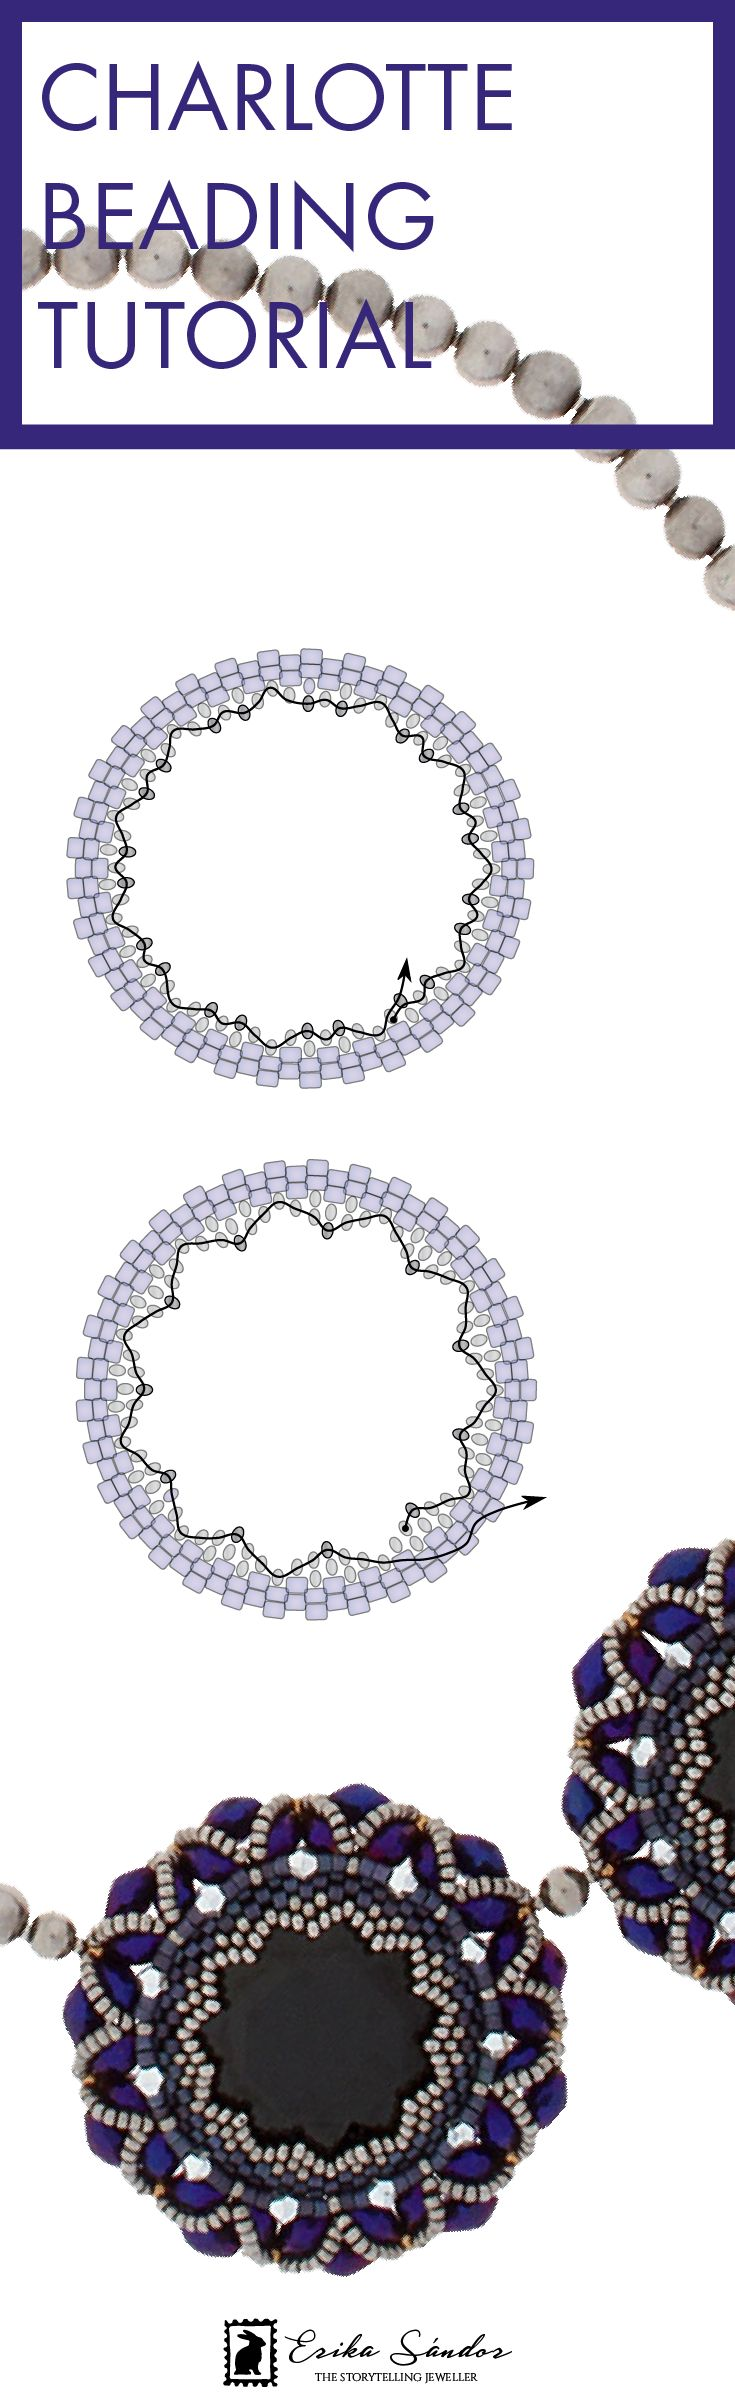 Beaded necklace tutorial / pattern / instructions with step-by-step diagrams. Beadwoven necklace / medallion / pendant with Miyuki beads, Swarovski cabochon 27 mm rivoli, olive beads and seed beads. Design by Erika Sandor The Storytelling Jeweller.